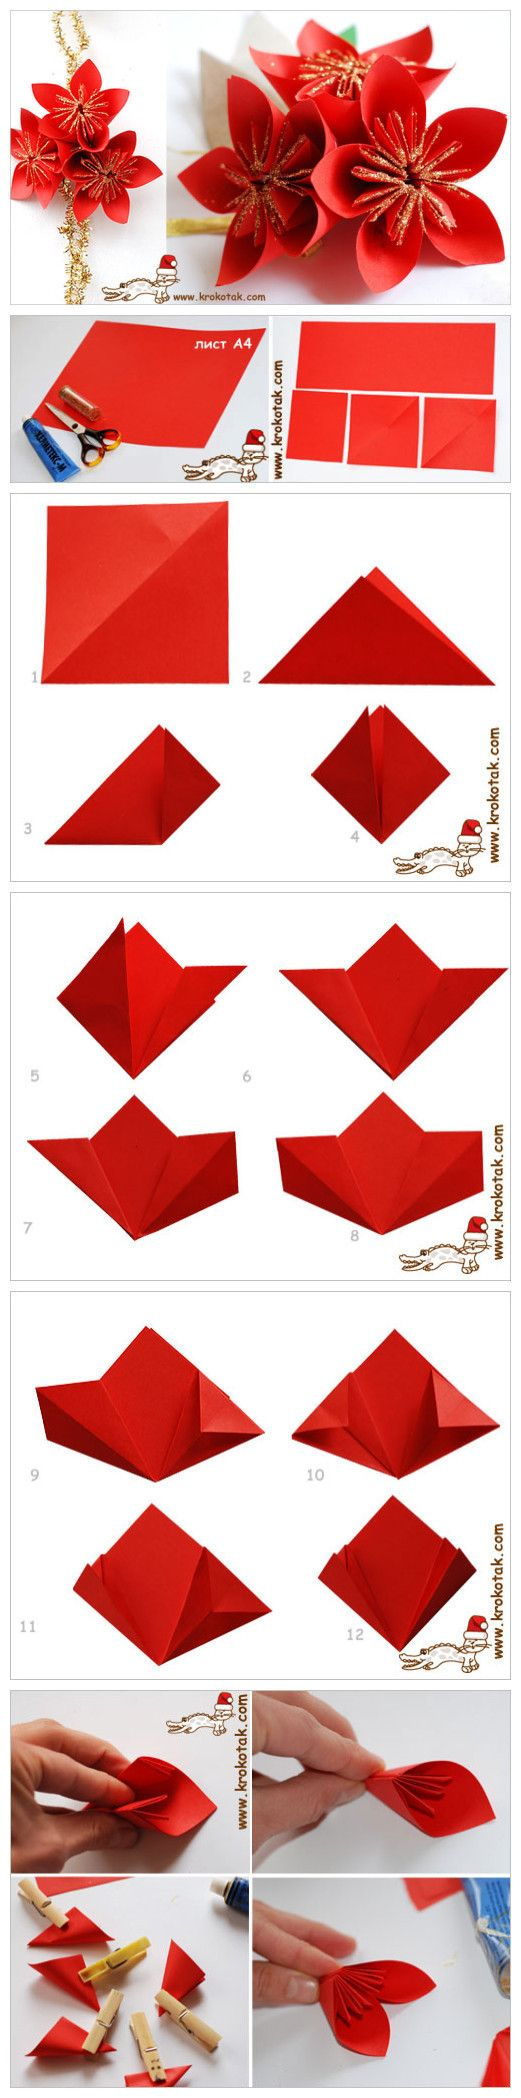 25 best ideas about origami flowers on pinterest paper for Diy paper lotus candlestick